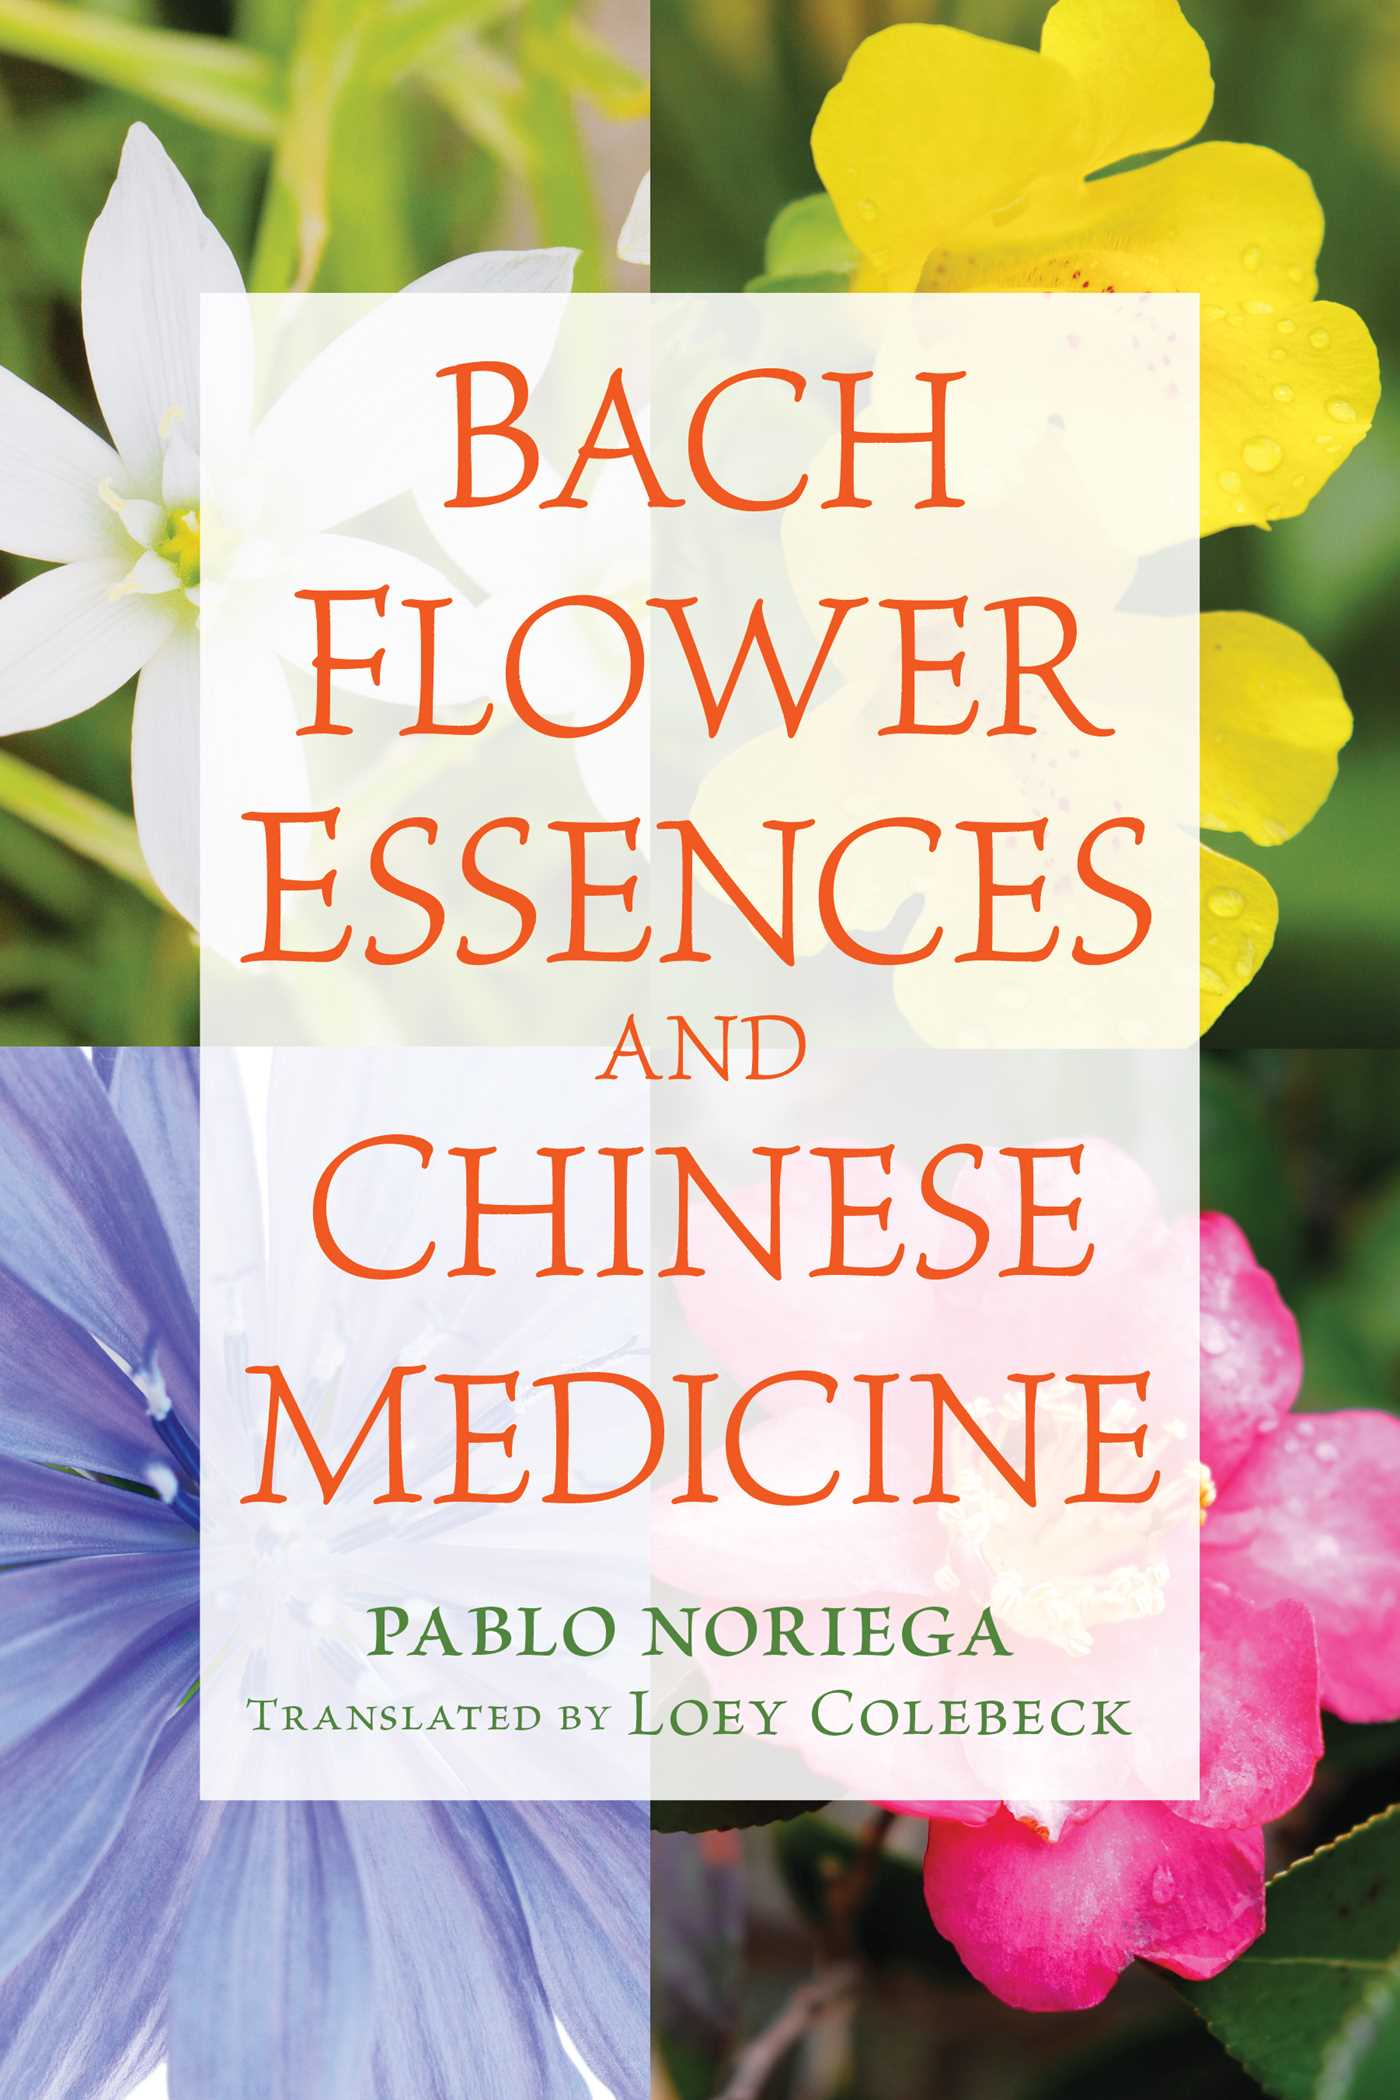 Bach flower essences and chinese medicine 9781620555712 hr